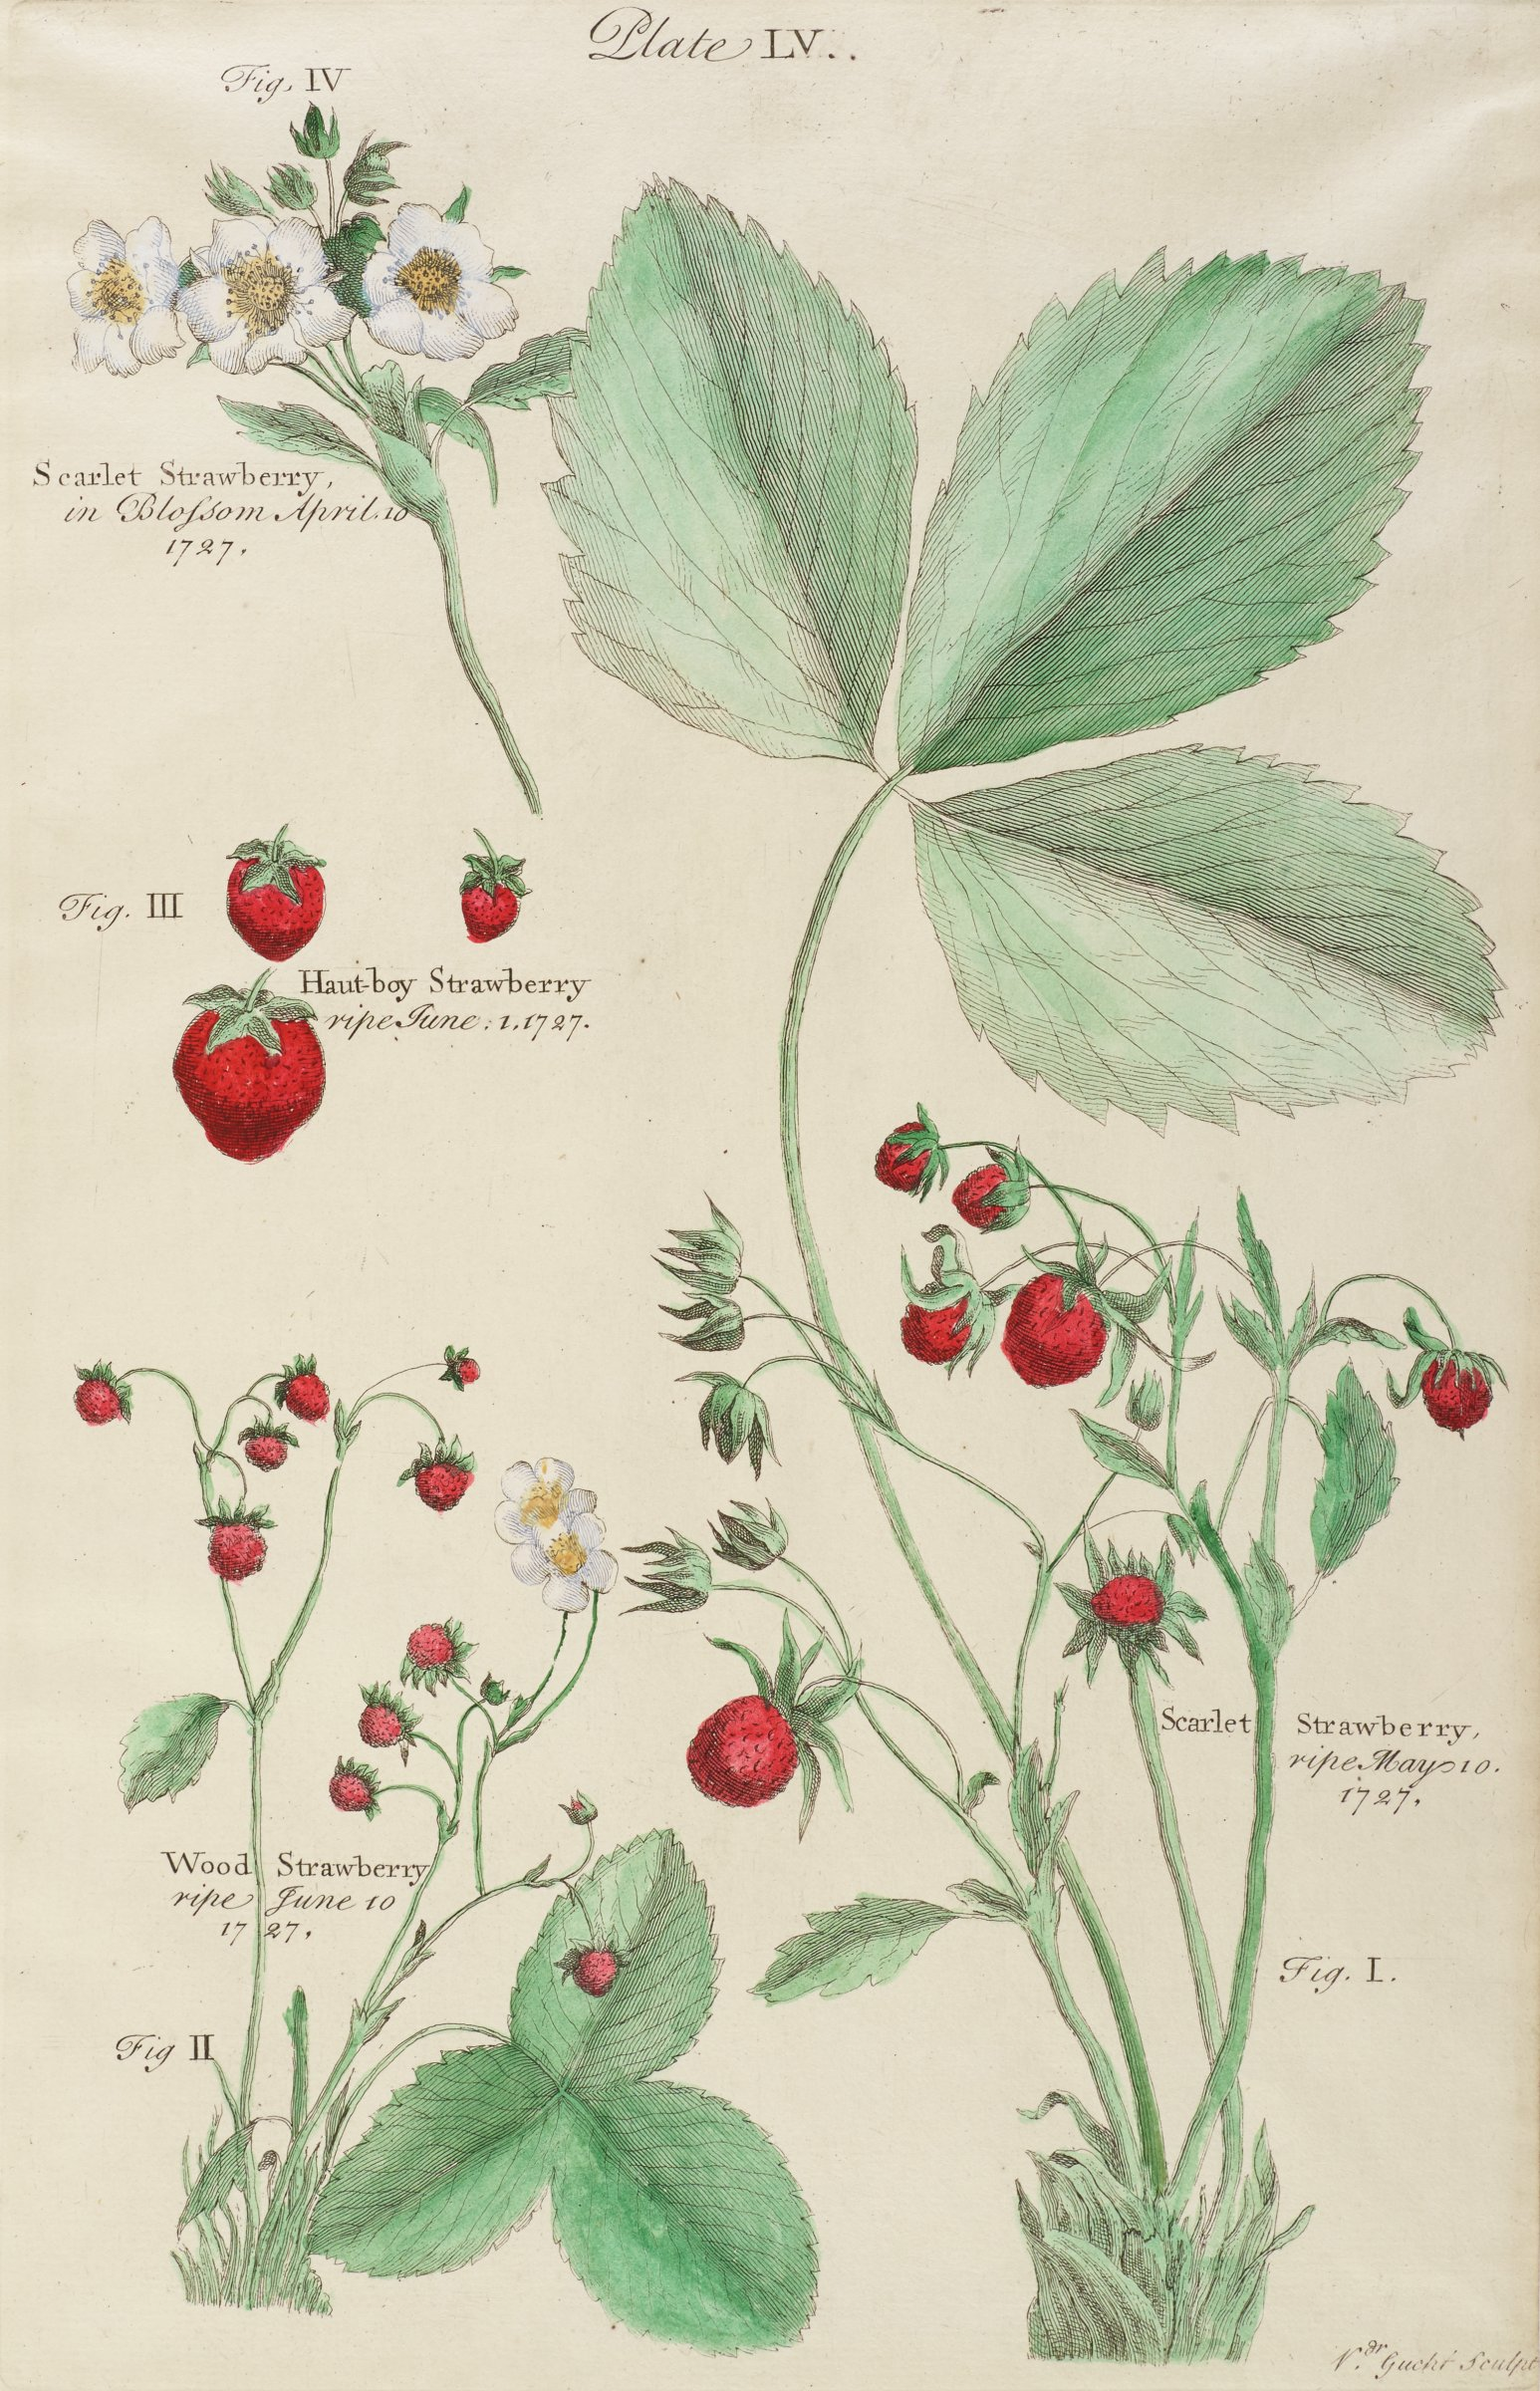 A botanical print depicting three types of strawberry plants. The uppermost plant is seen in blossom while the other three plants are shown in the ripe stage.